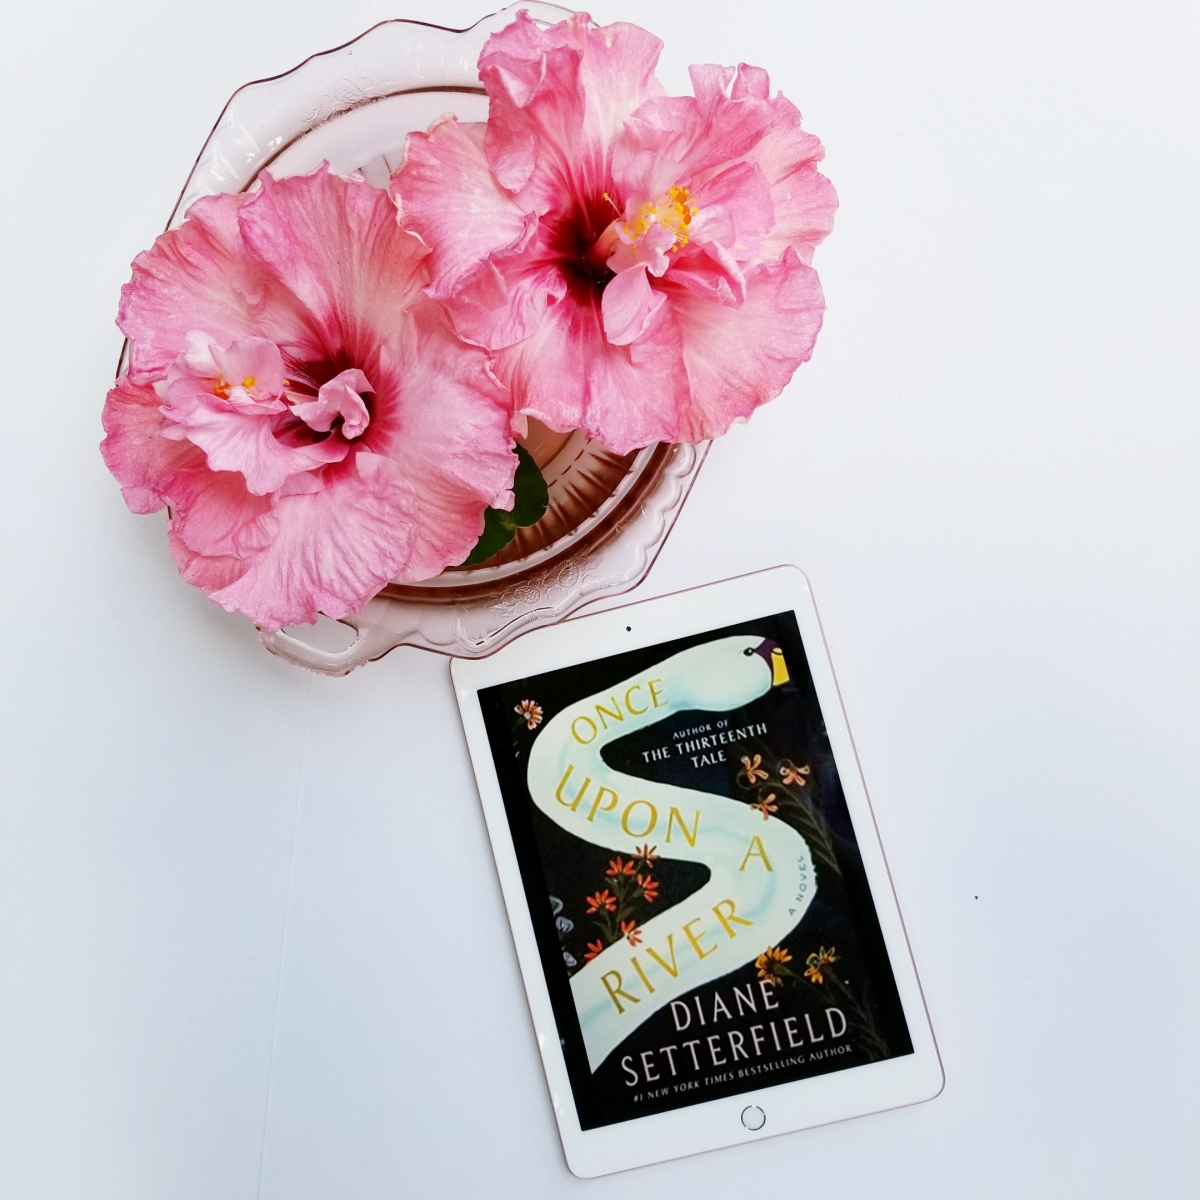 First Line Fridays: Once Upon a River by Diane Setterfield #firstlinefridays #tarheelreader #thruponriver @DianeSetterfie1 @atriabooks #onceuponariver